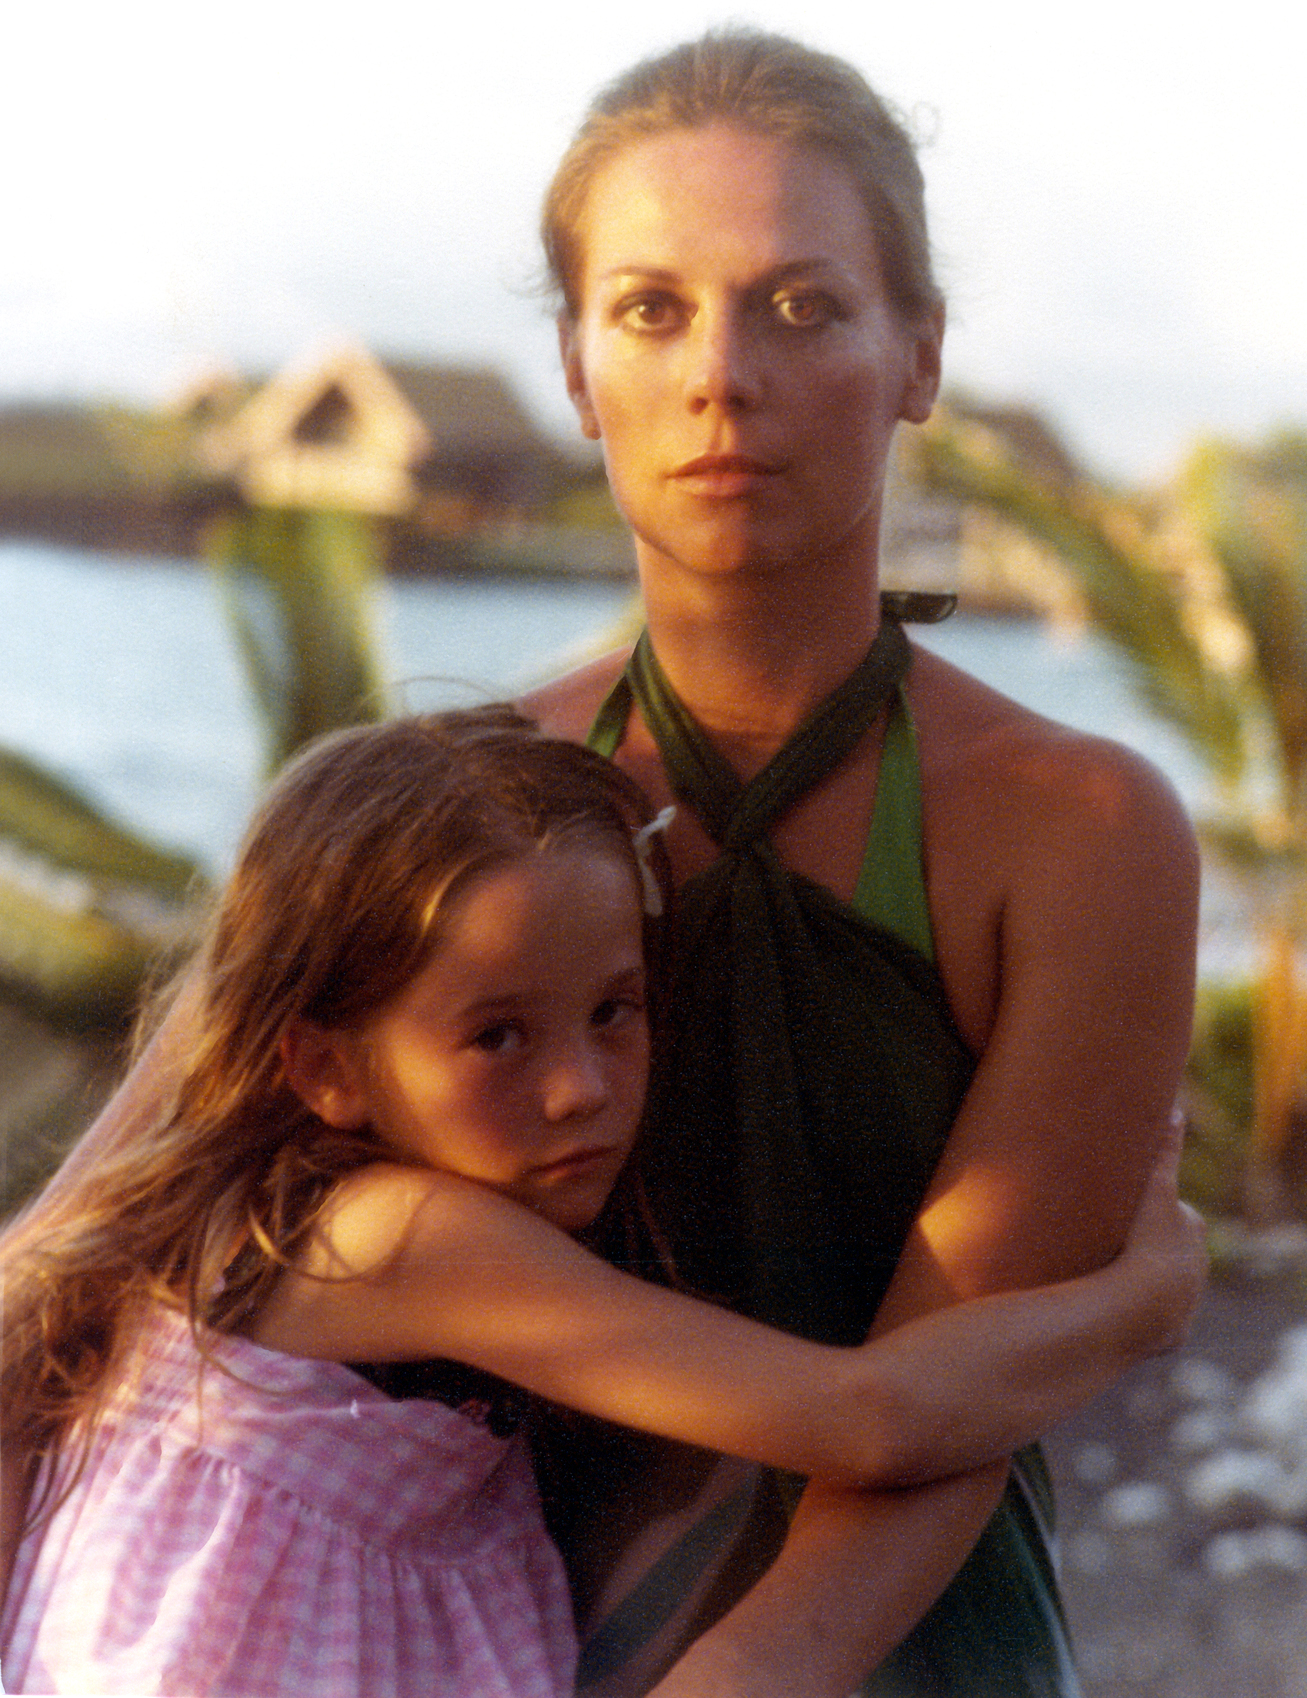 natalie-wood-with-her-daughter-natasha-gregson-wagner-in-hawaii-1978-_0_preview copy